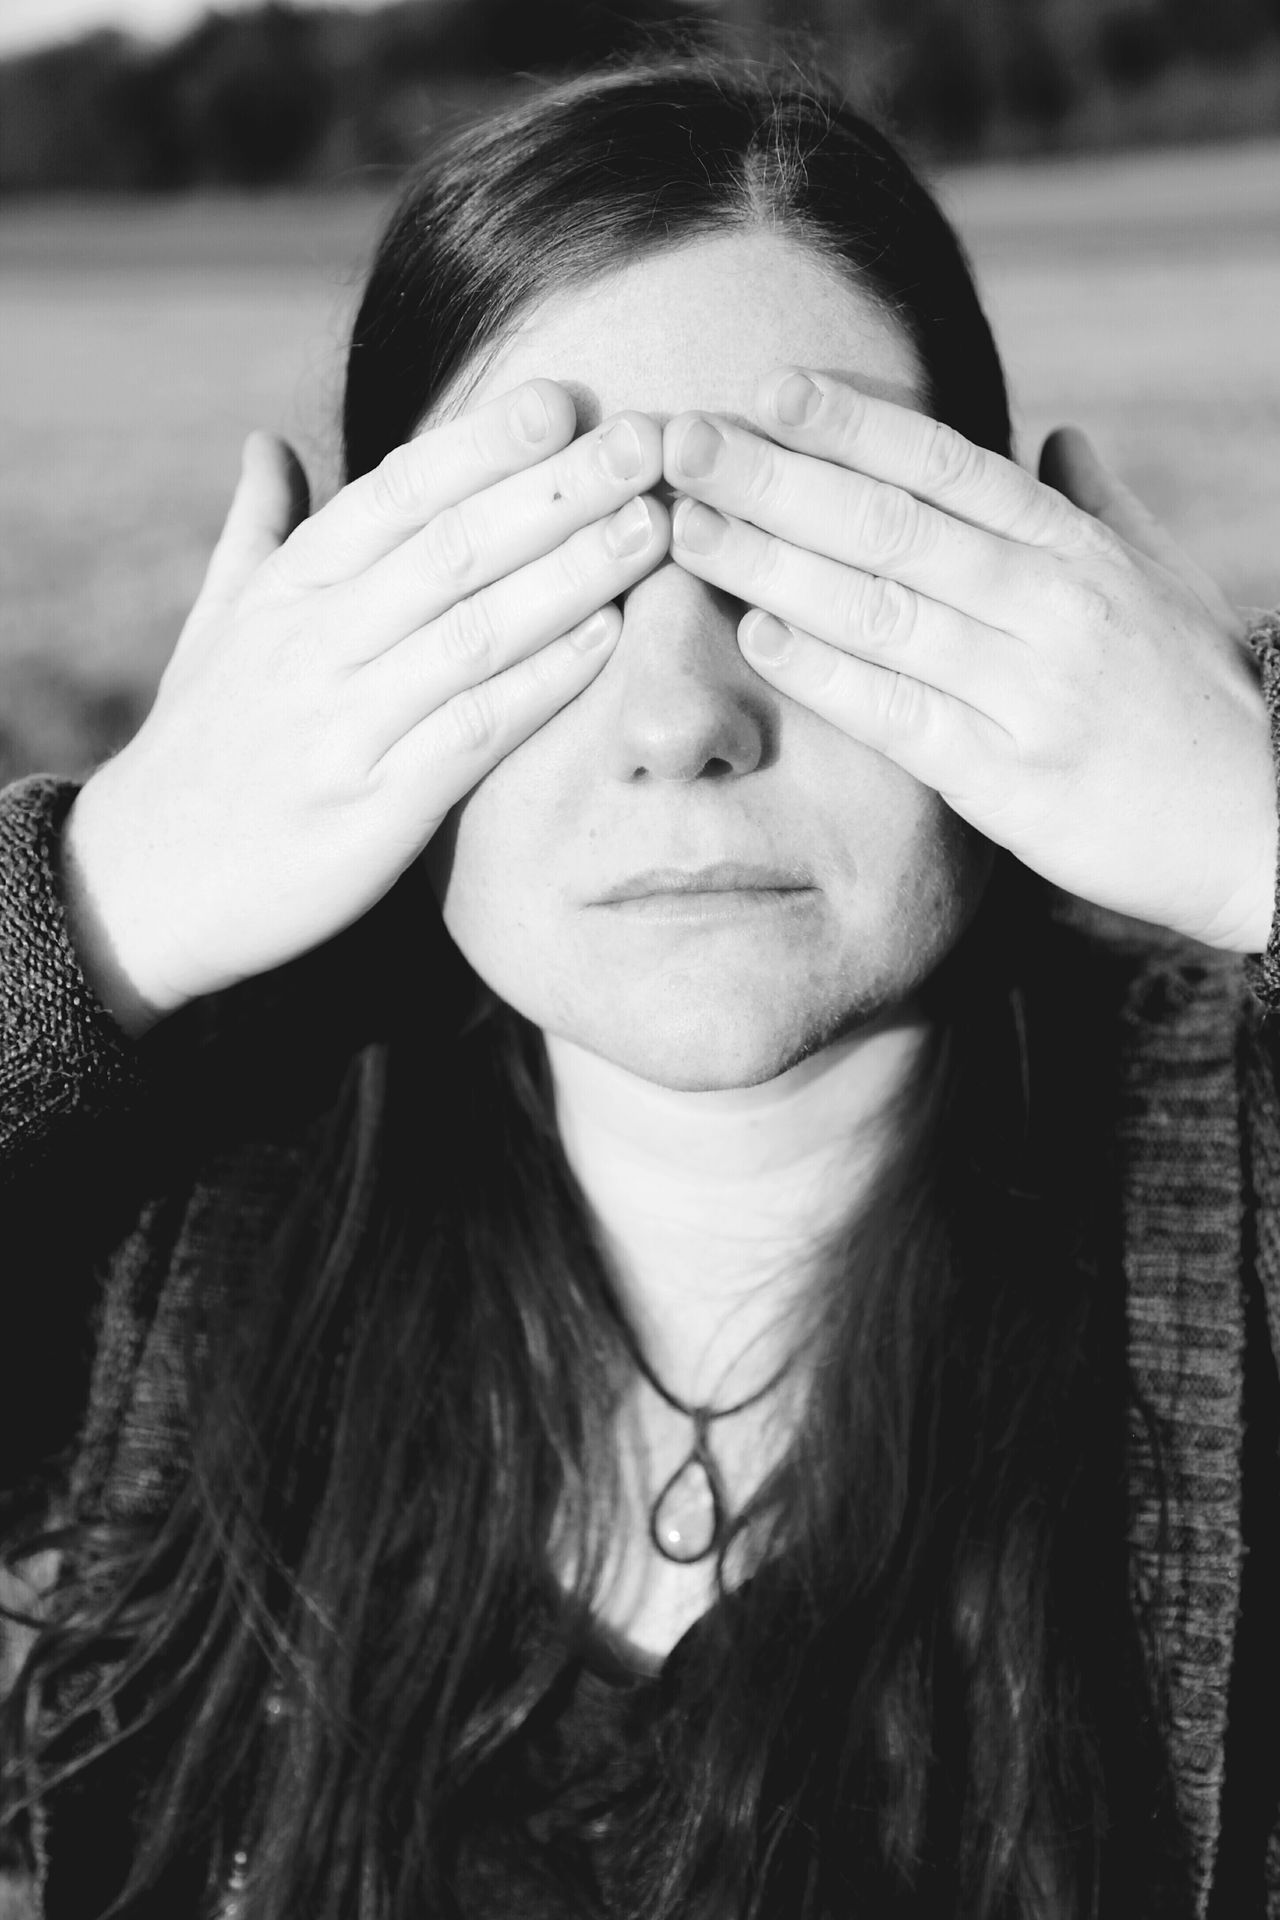 Portrait Hands Hands Covering Eyes Women One Woman Only One Person People Close-up One Young Woman Only Young Adult Human Hand Front View Human Eye Black & White Black And White Blackandwhite Eyes Portrait Of A Woman The Portraitist - 2017 EyeEm Awards Live For The Story BYOPaper!